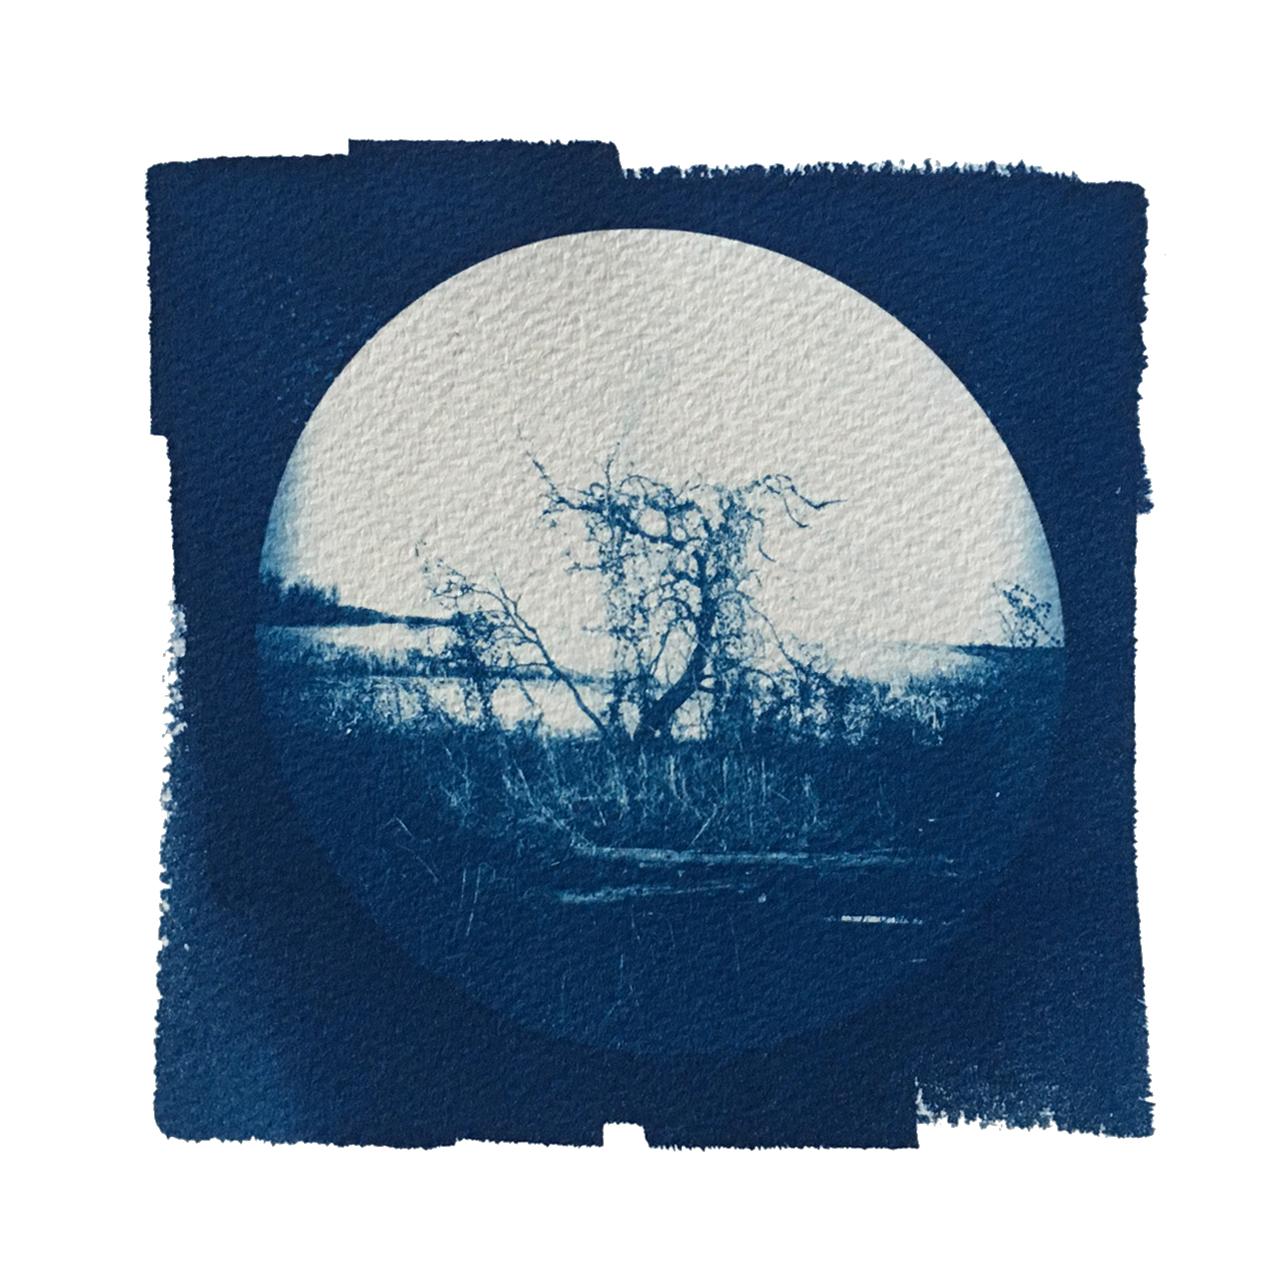 "TITLE /  Partner With the Sun No. 5  MEDIUM /  Cyanotype Print, Printed on 100% Cotton Paper  SIZE /  7"" x 7""  PRICE /  $200.00"